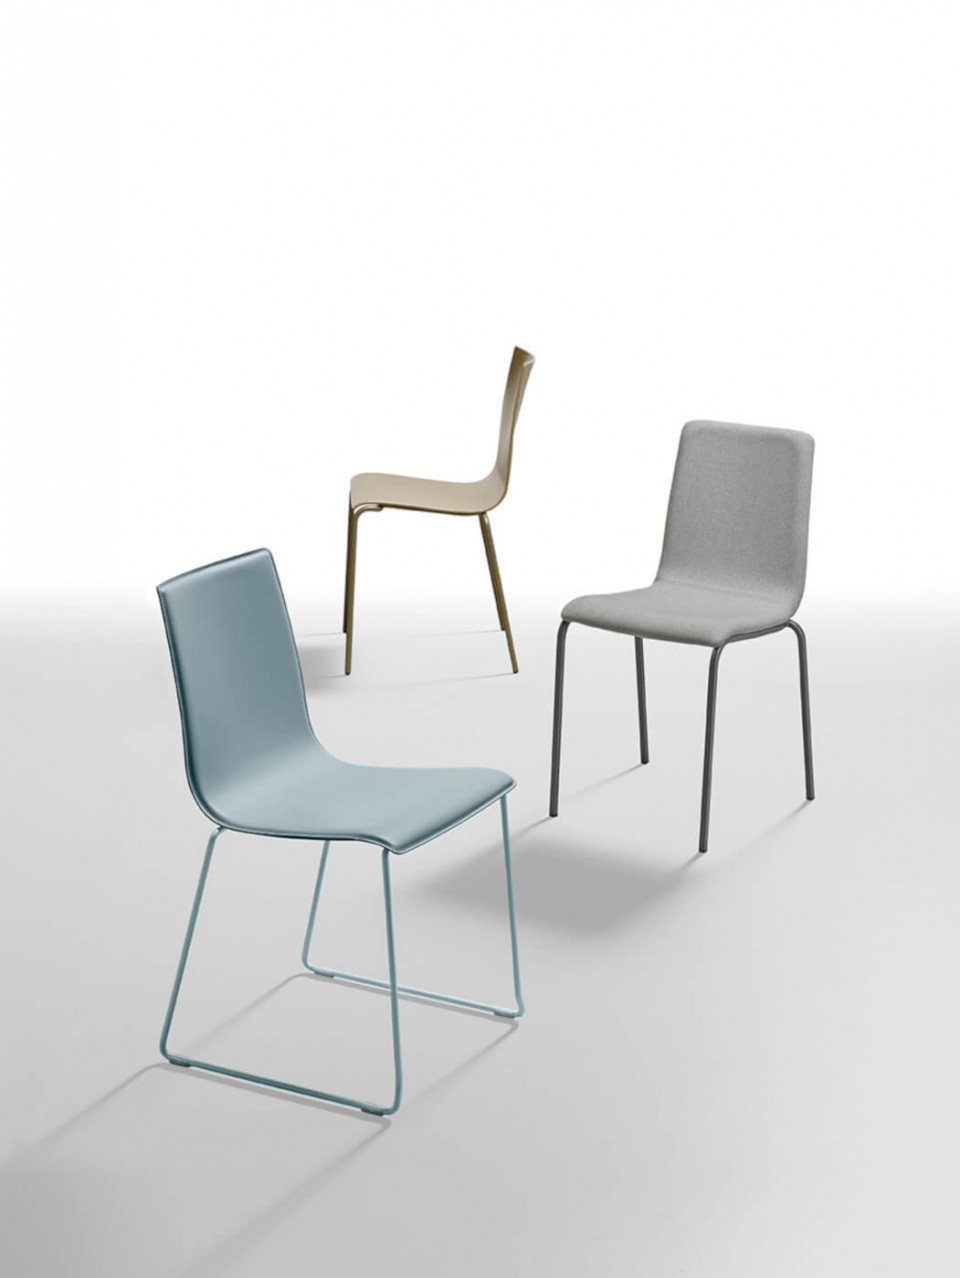 Passepartout chair with blue hide seat and blue painted metal base